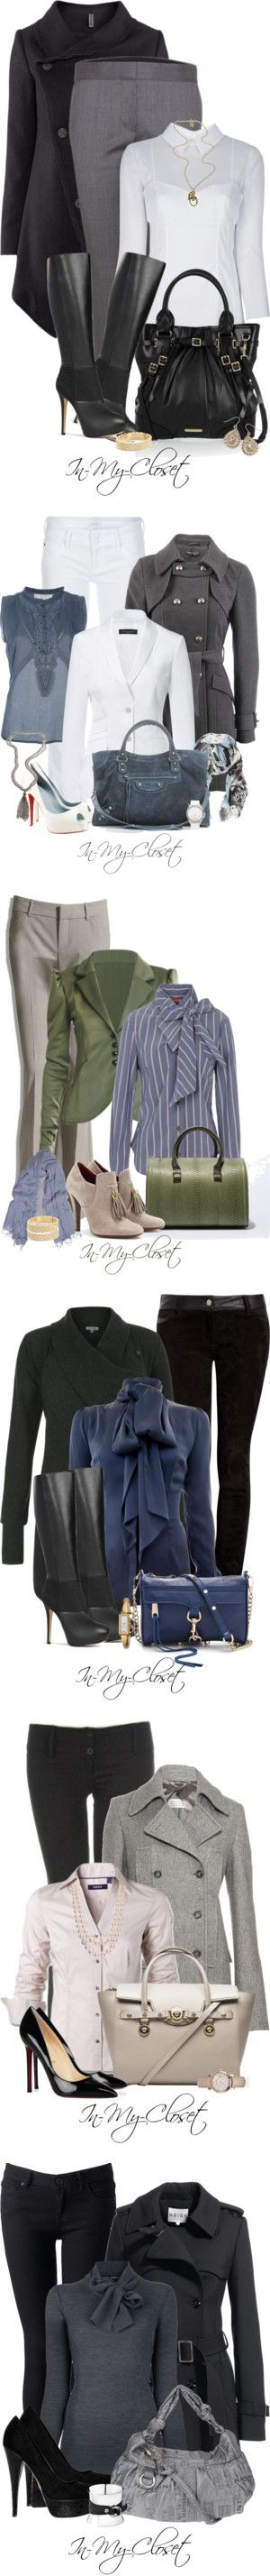 """""""For The Office"""" by in-my-closet on Polyvore"""